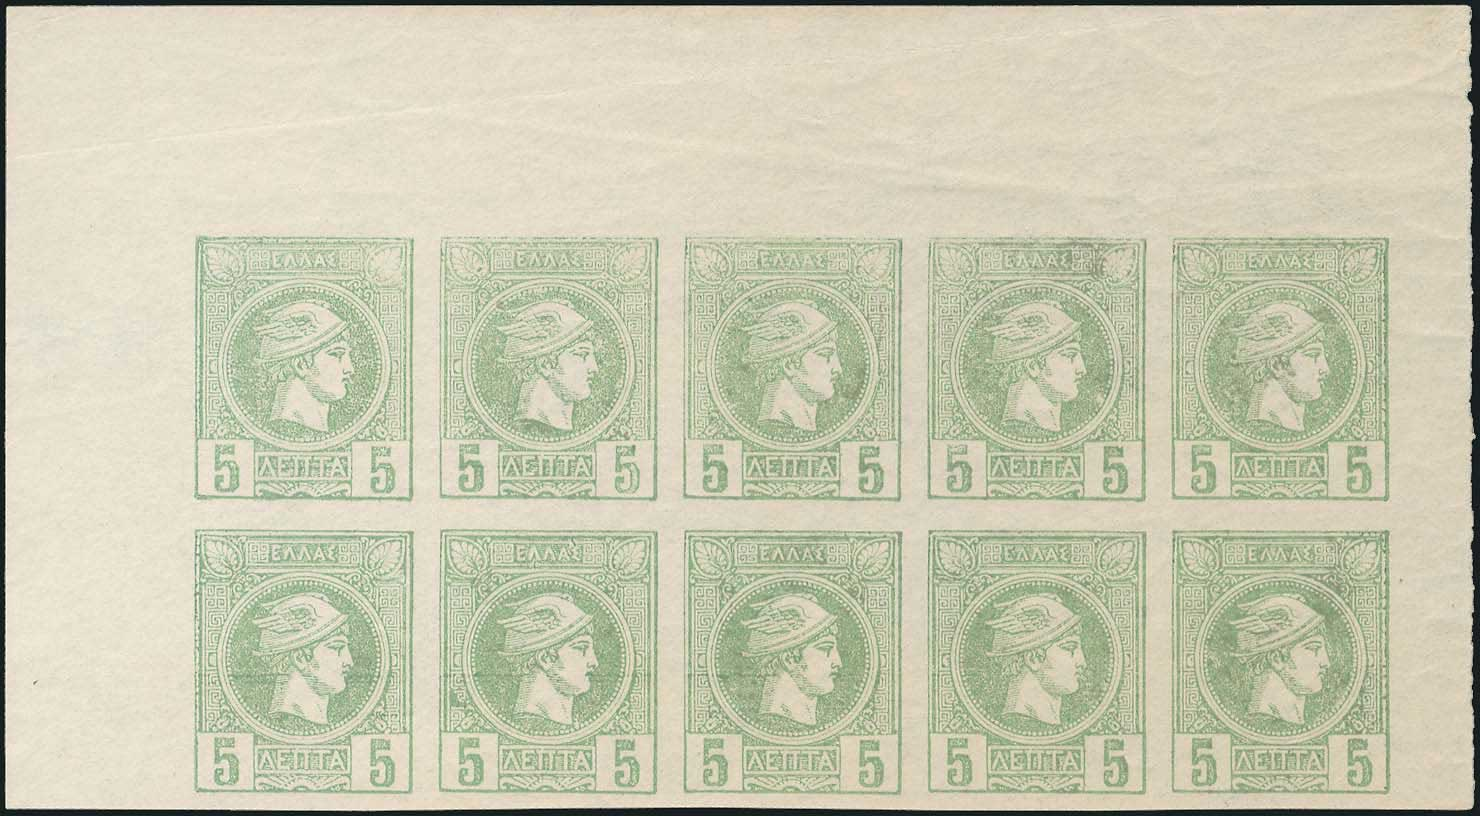 Lot 1025 - GREECE-  SMALL HERMES HEAD athens issues -  A. Karamitsos Public Auction 599 General Stamp Sale